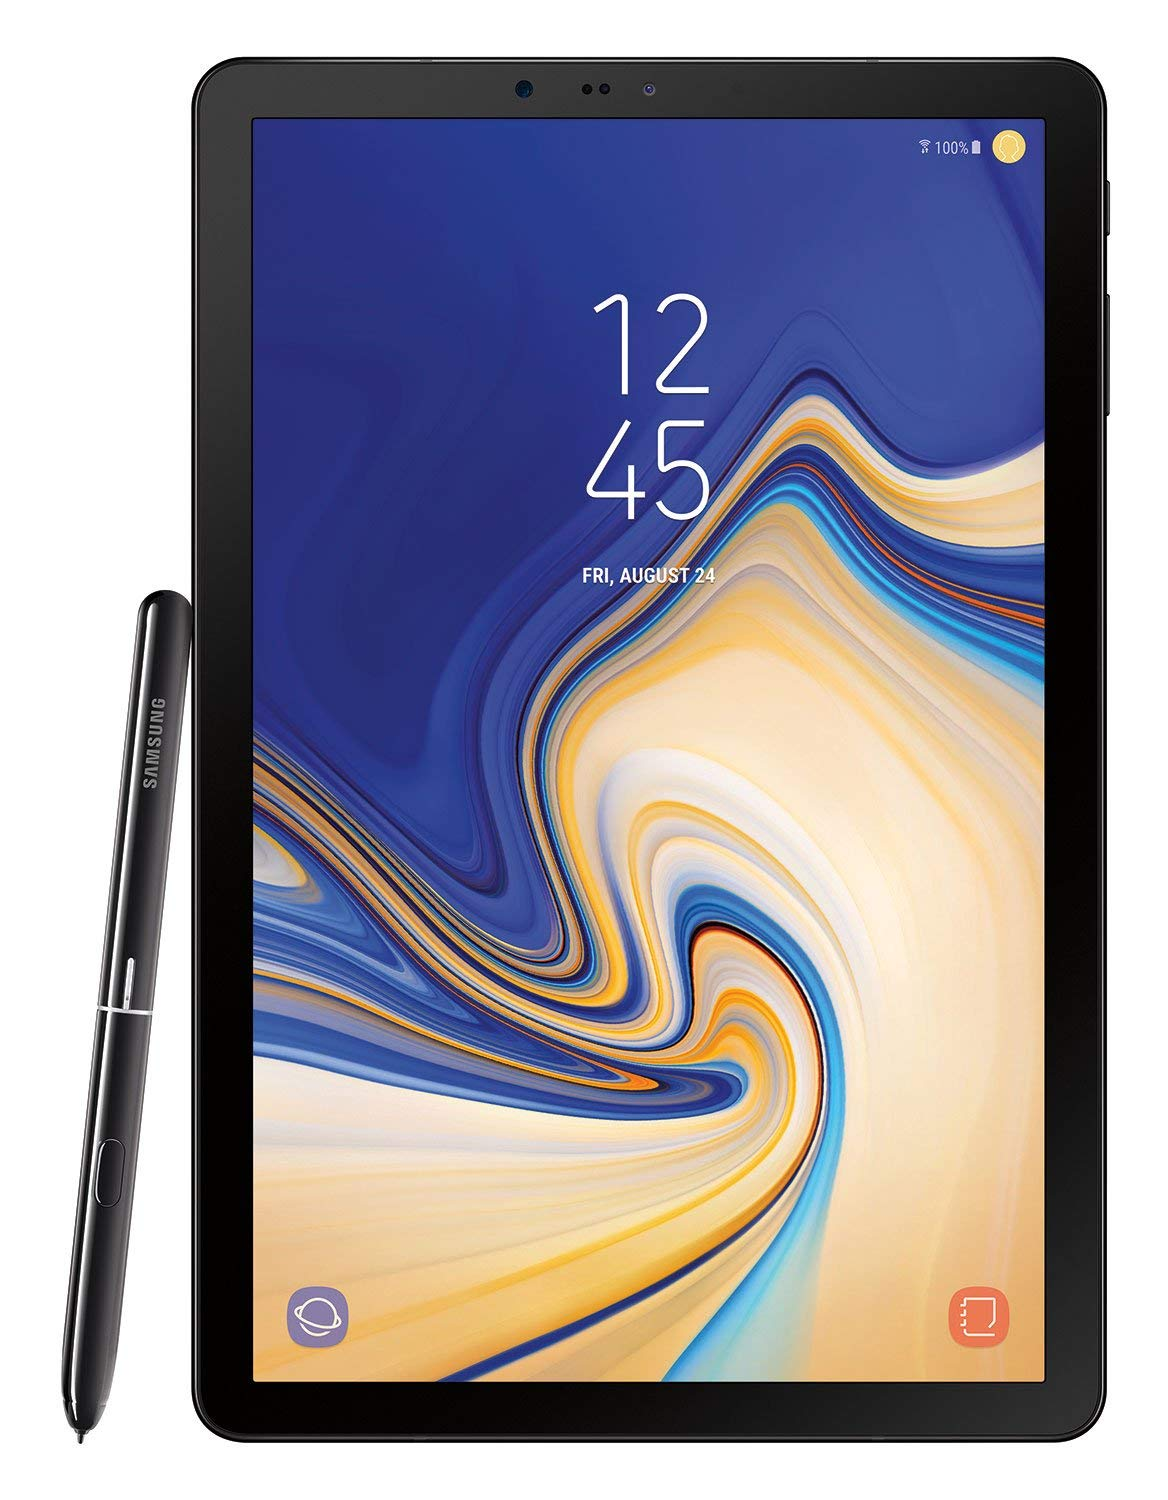 samsung galaxy tab s4 archives best reviews tablet. Black Bedroom Furniture Sets. Home Design Ideas